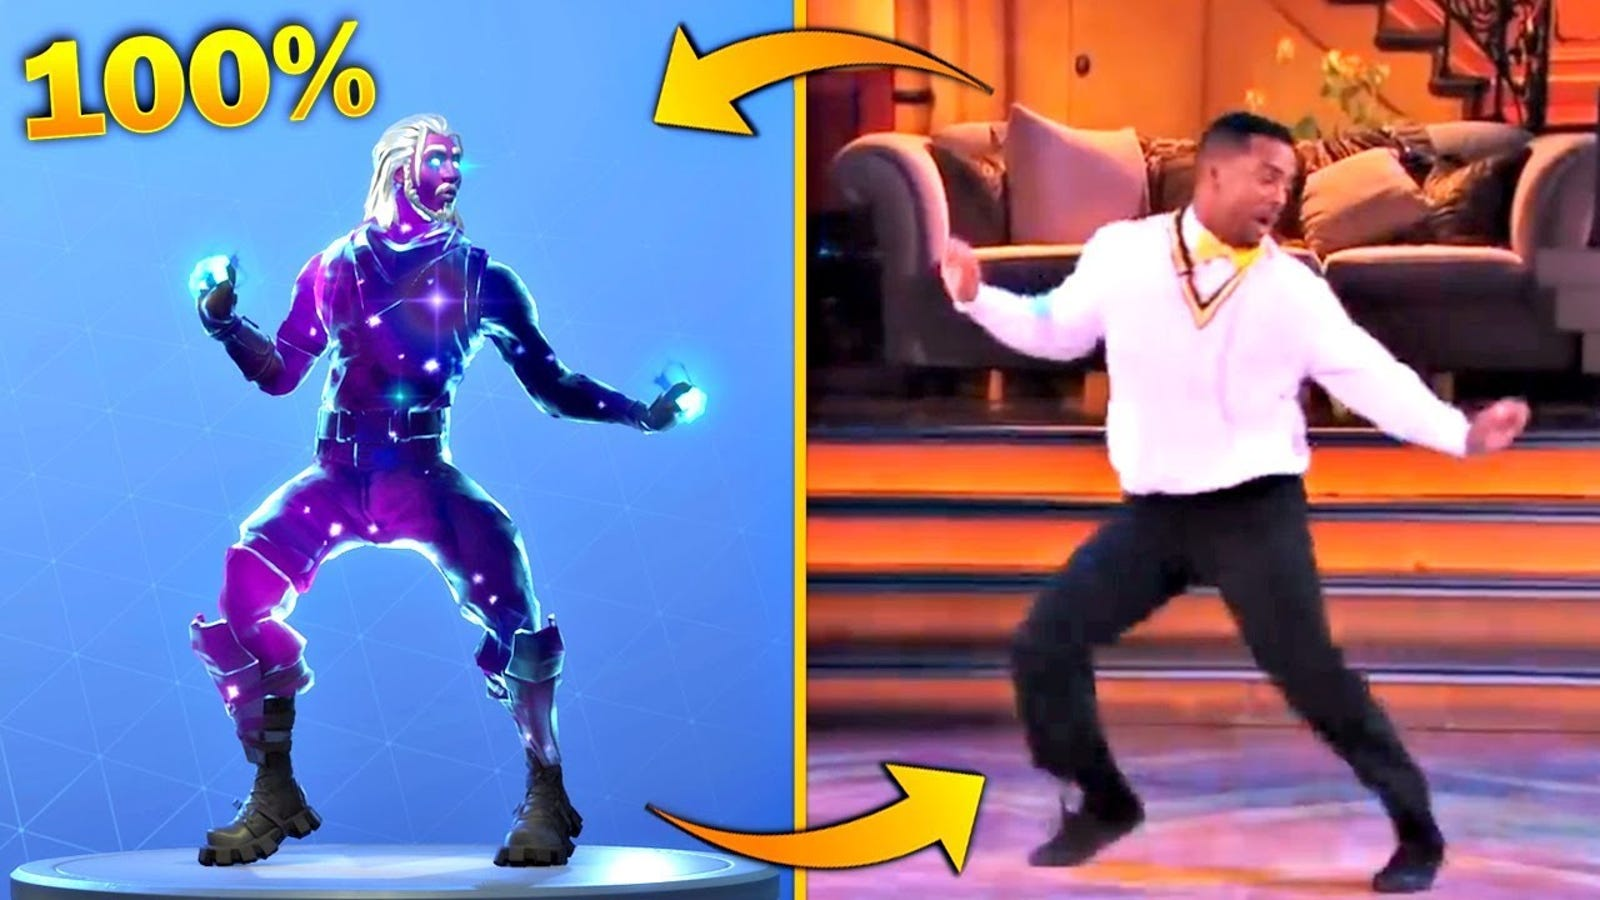 why are stars suing epic games over fortnite s dance moves - fortnite marshmello dance 10 hours